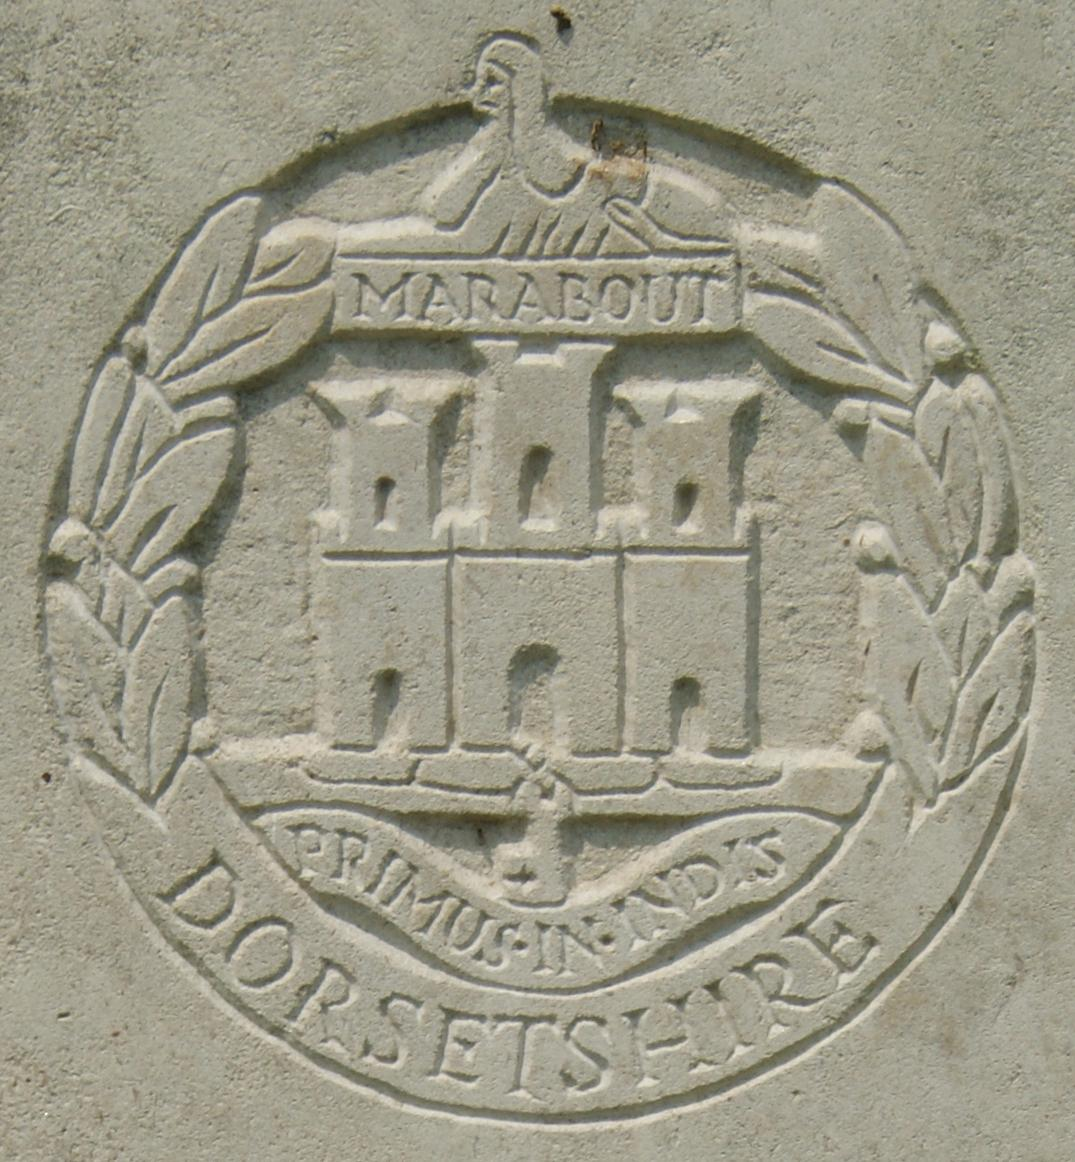 Dorsetshire Regiment badge